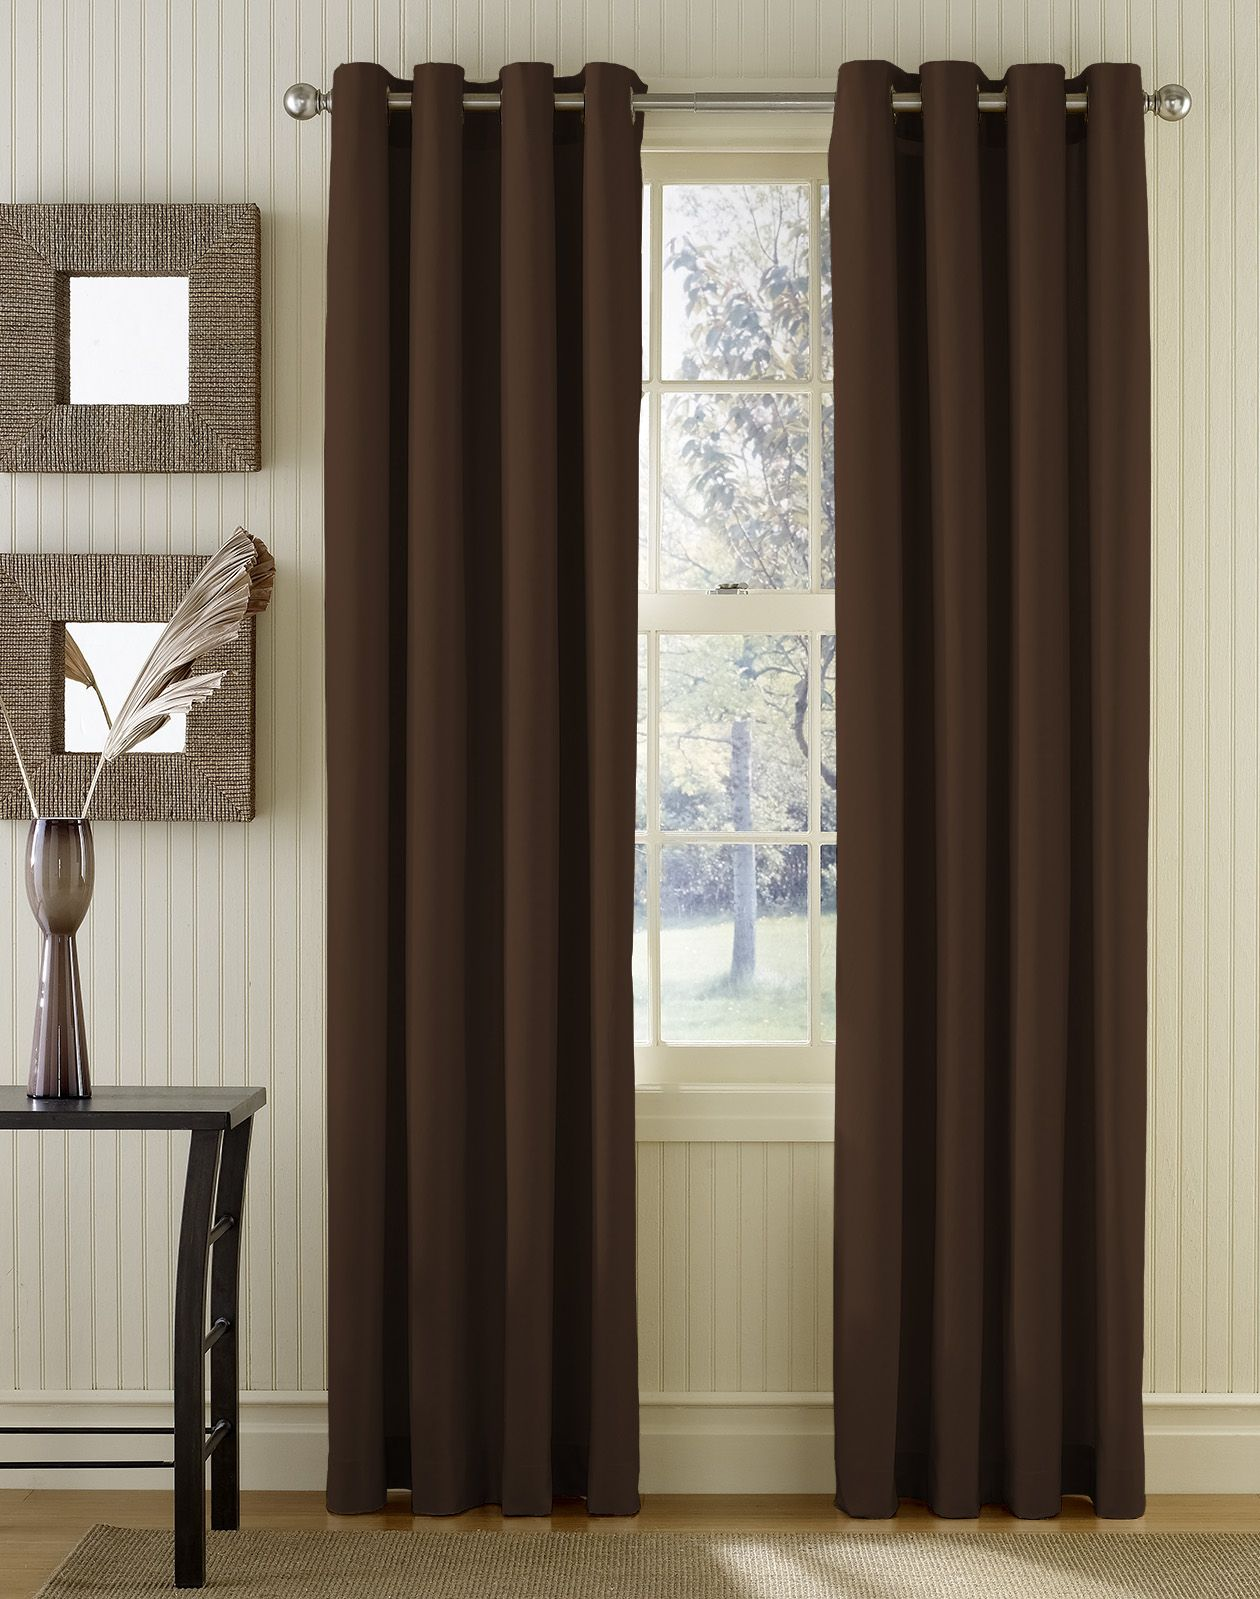 silk peyton pottery wonderful up curtains coping glam residence decorating full with barn your about mccurtaincounty drapes white drape the red dupioni cauroracom gray size of confusion just all